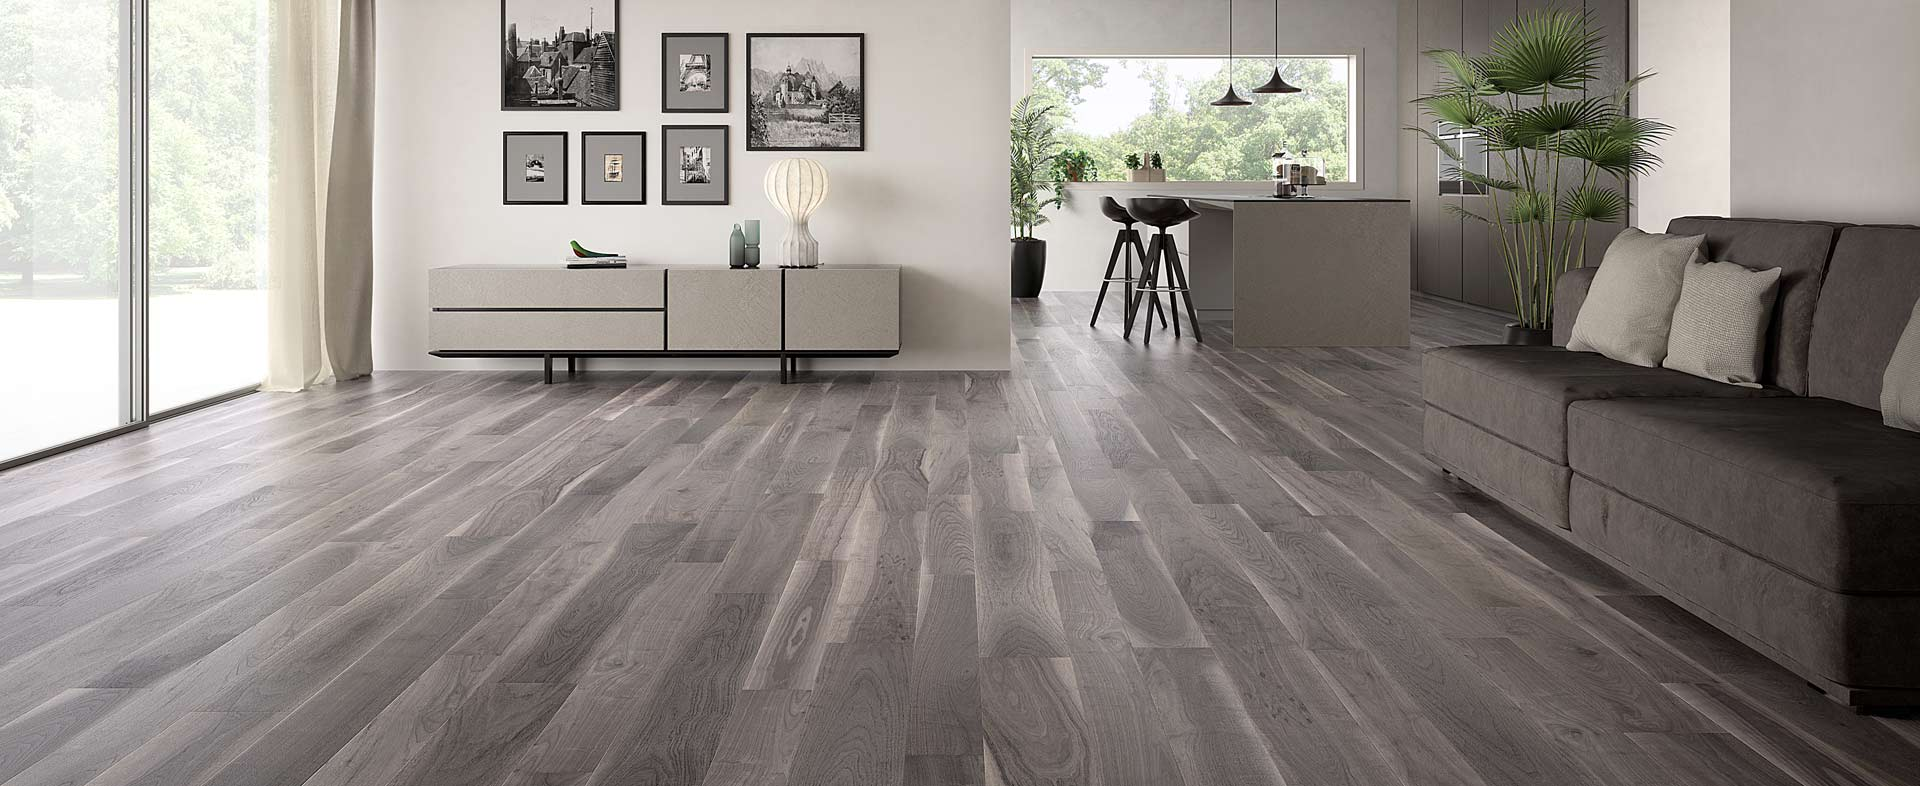 Bark Walnut Pregio Planks